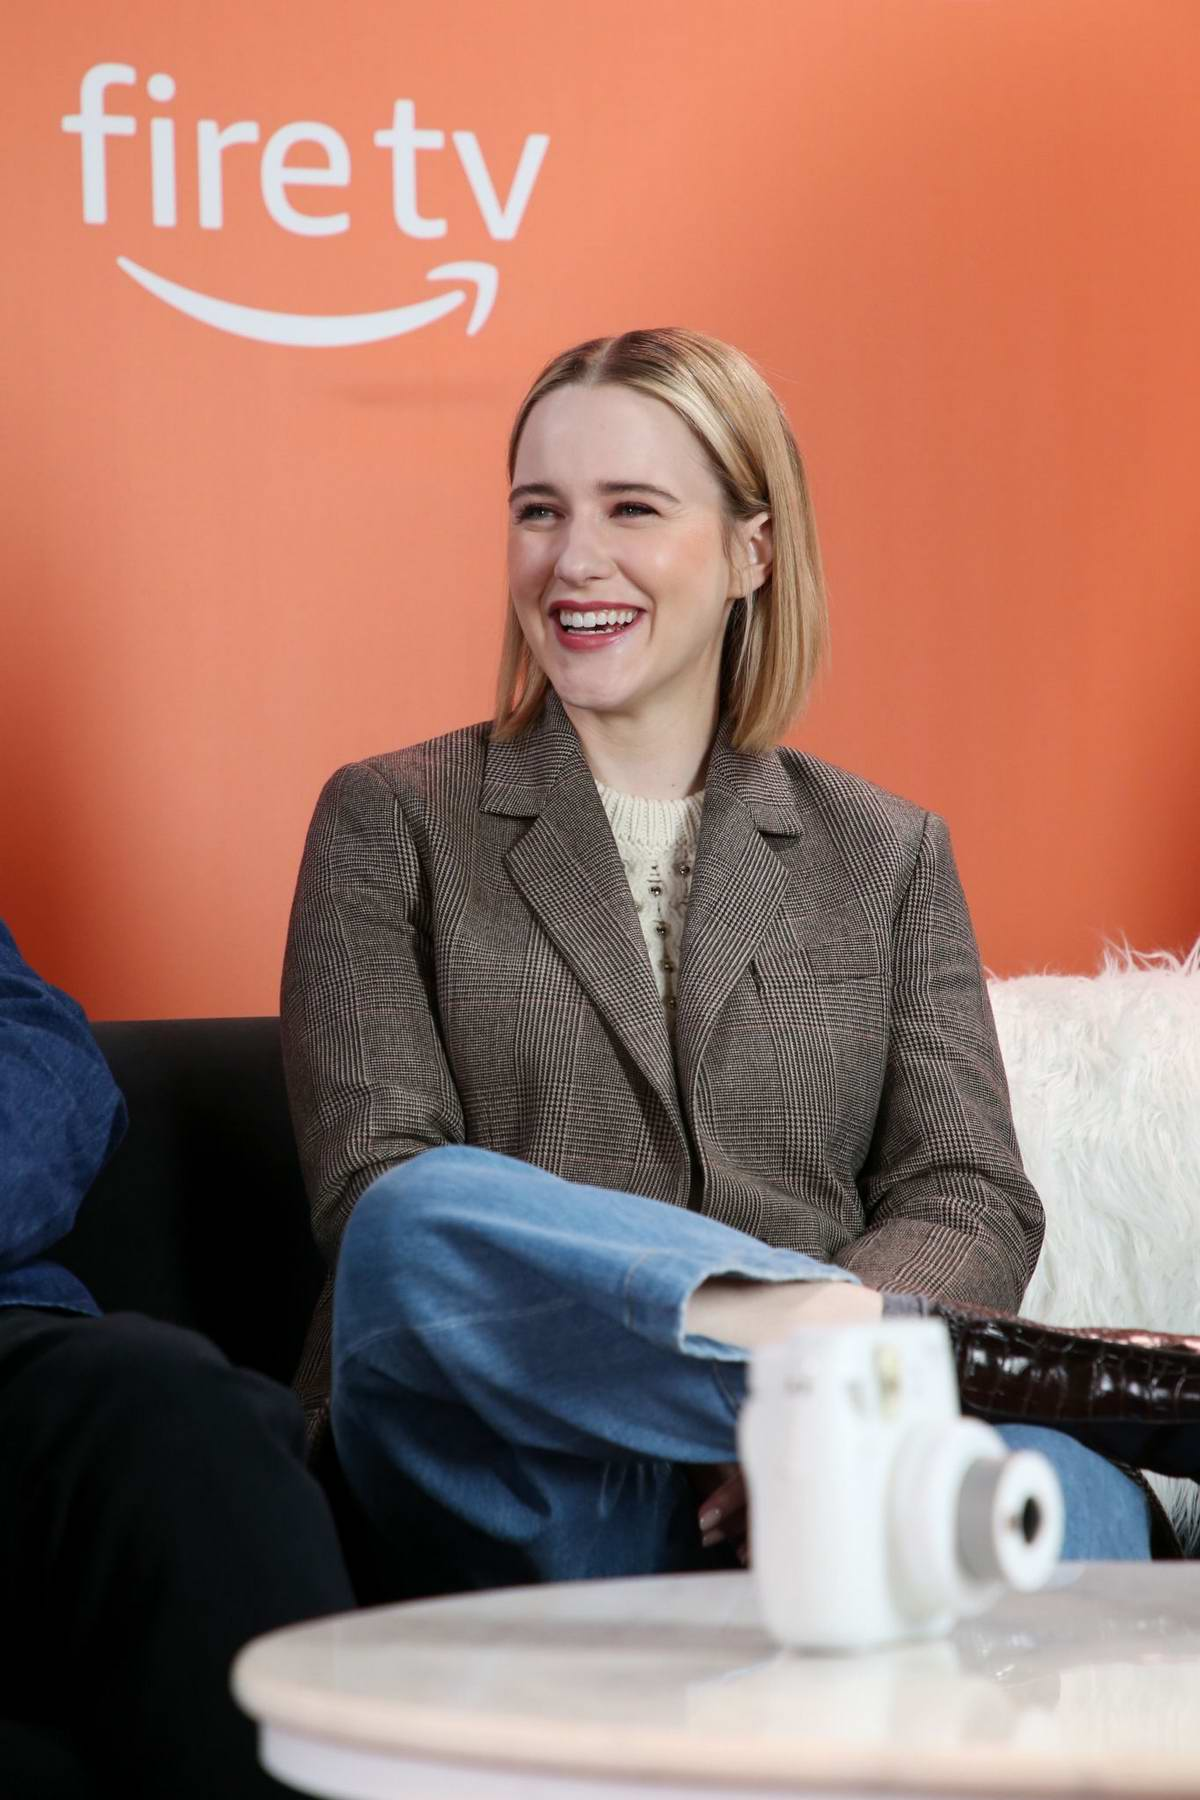 Rachel Brosnahan attends The Vulture Spot during the 2020 Sundance Film Festival in Park City, Utah